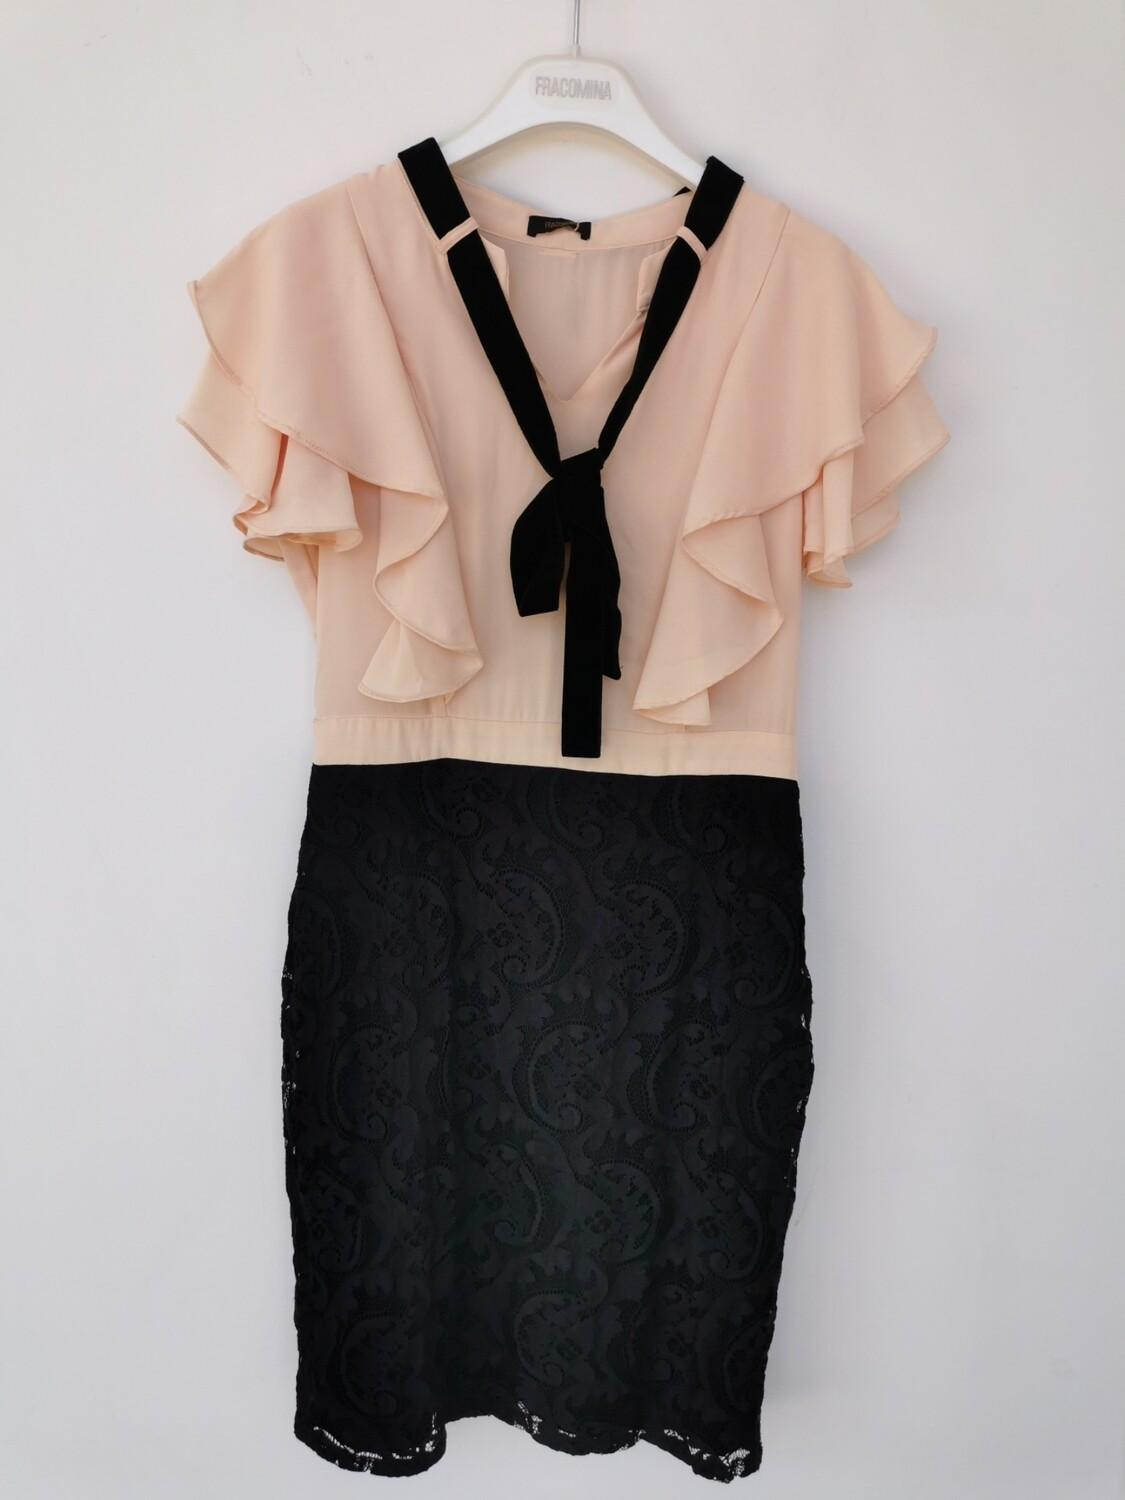 dress with lace skirt and ruffles.